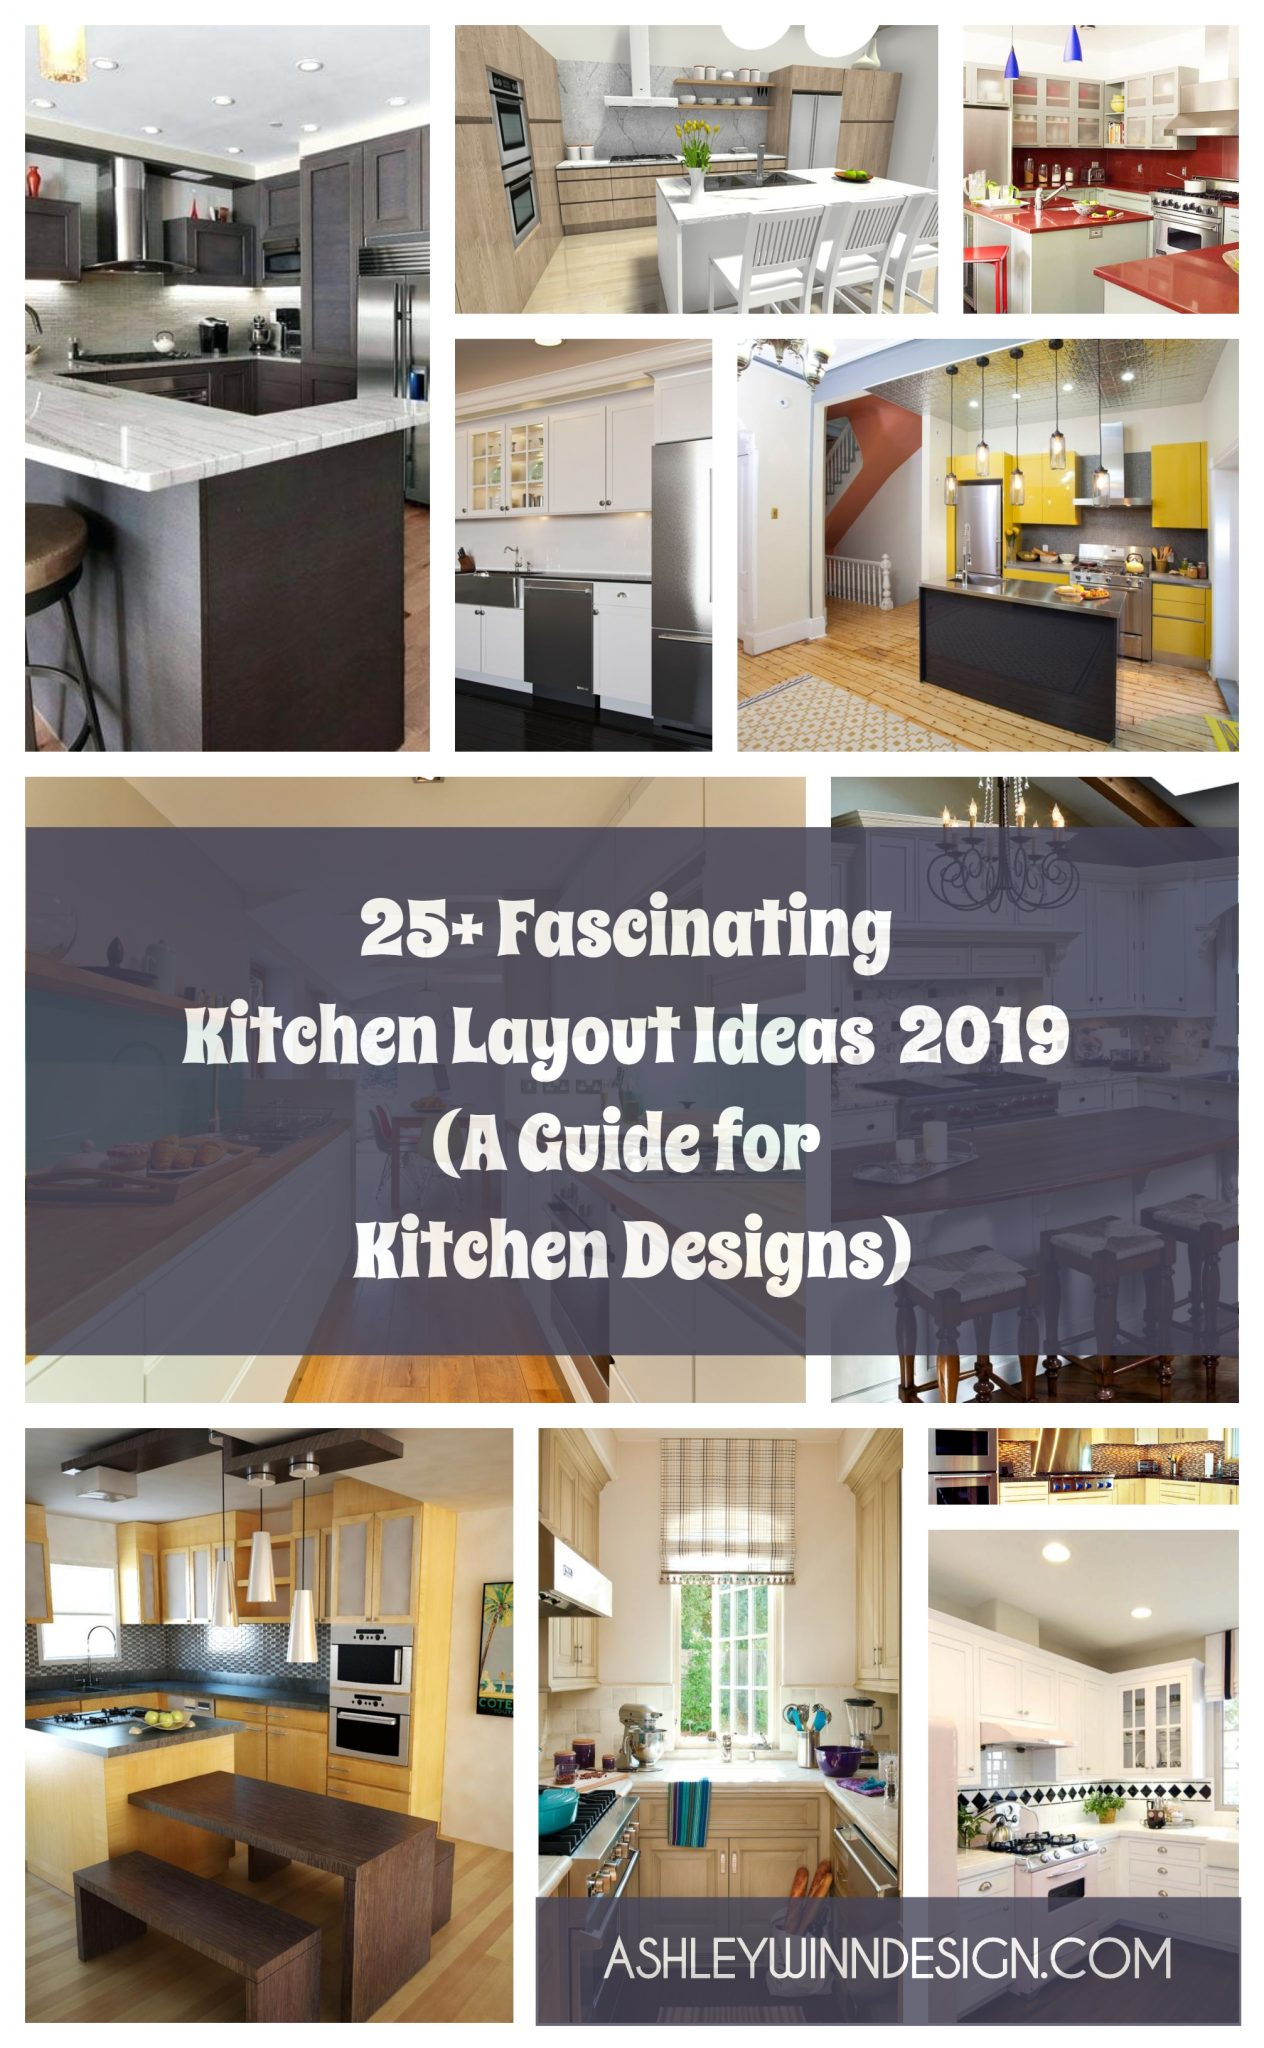 25 Fascinating Kitchen Layout Ideas 2020 A Guide For Kitchen Designs